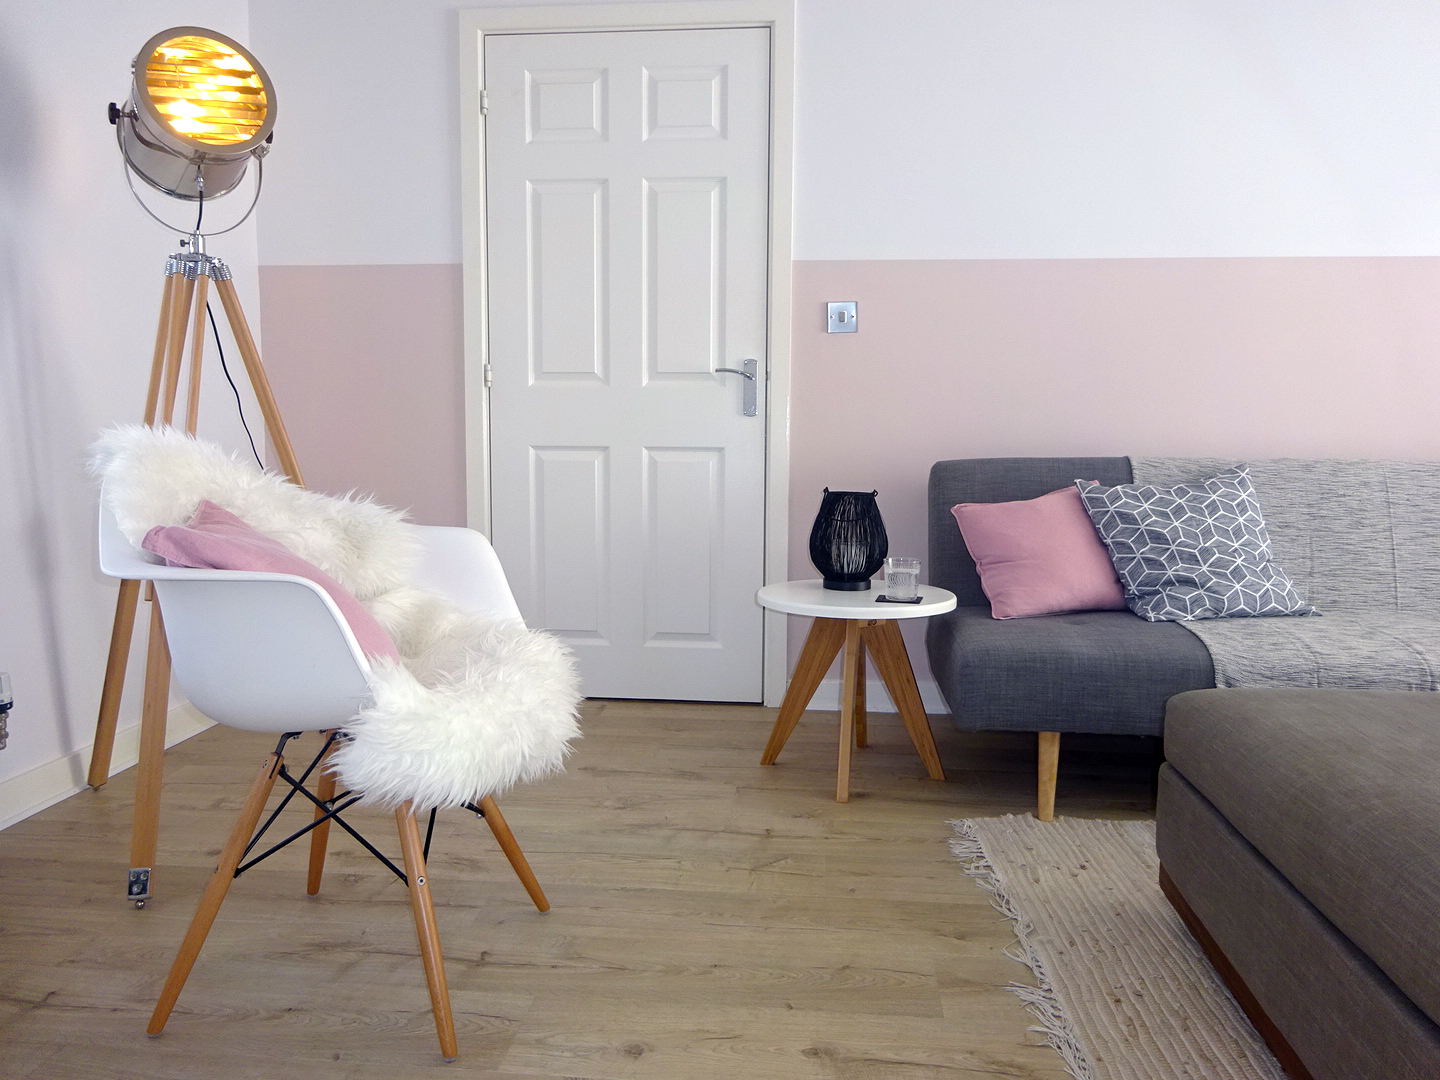 Blush, grey & white work really well to create a peaceful family space